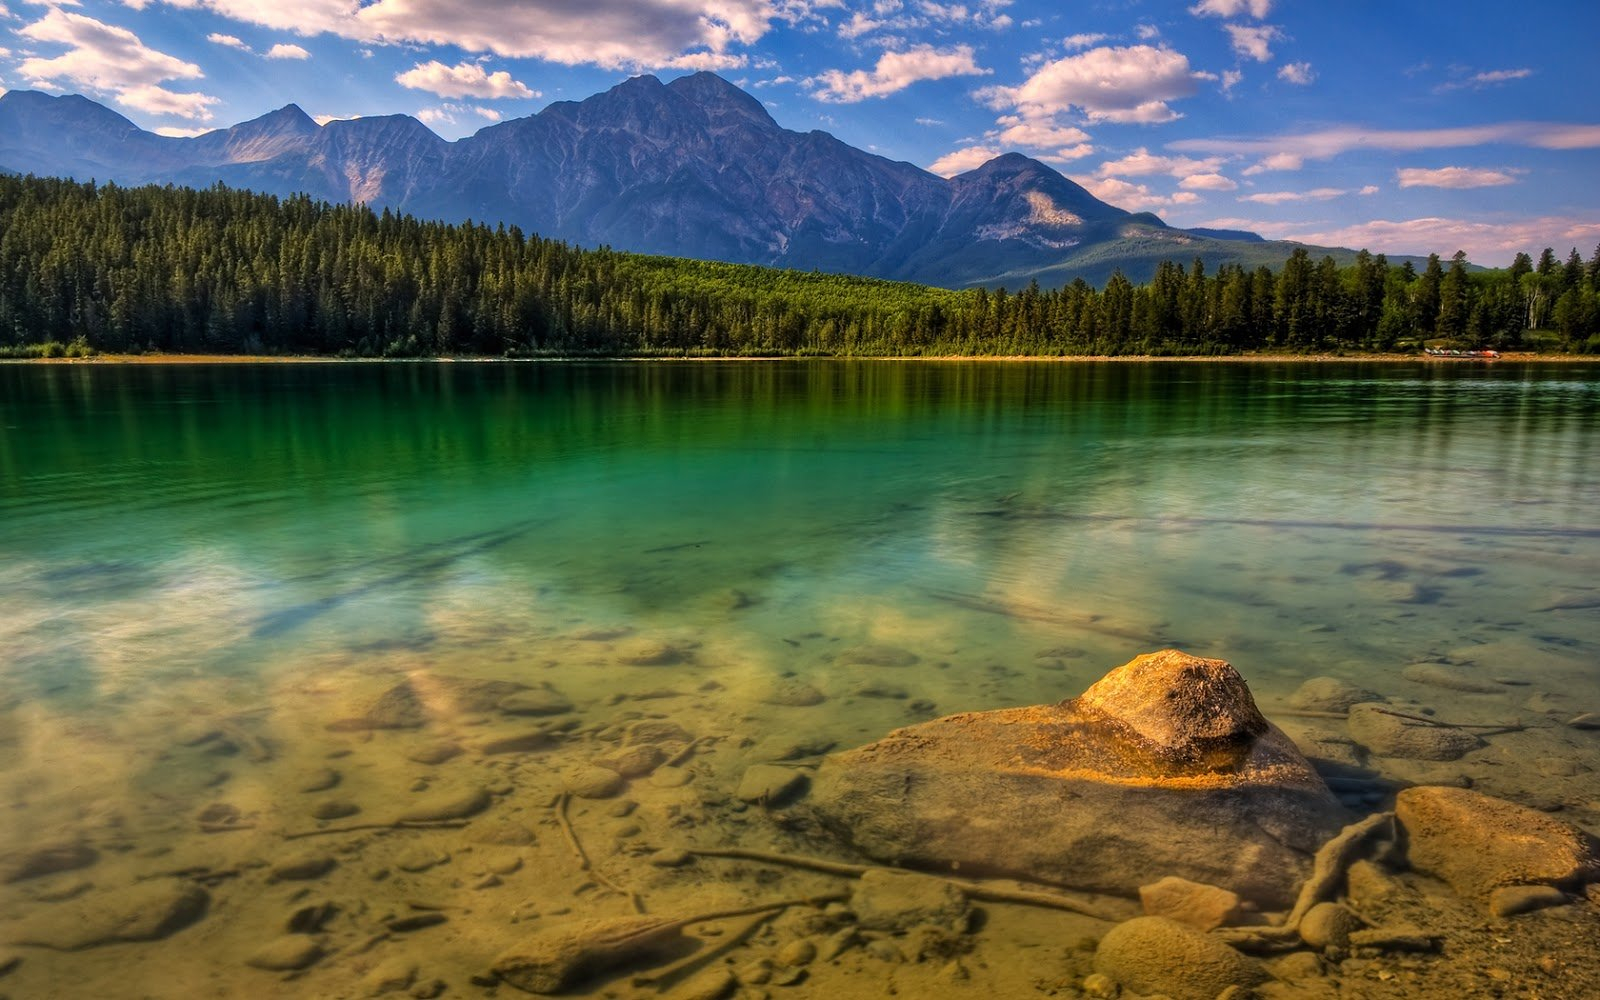 download wallpapers for desktop Most beautiful places in the 1600x1000